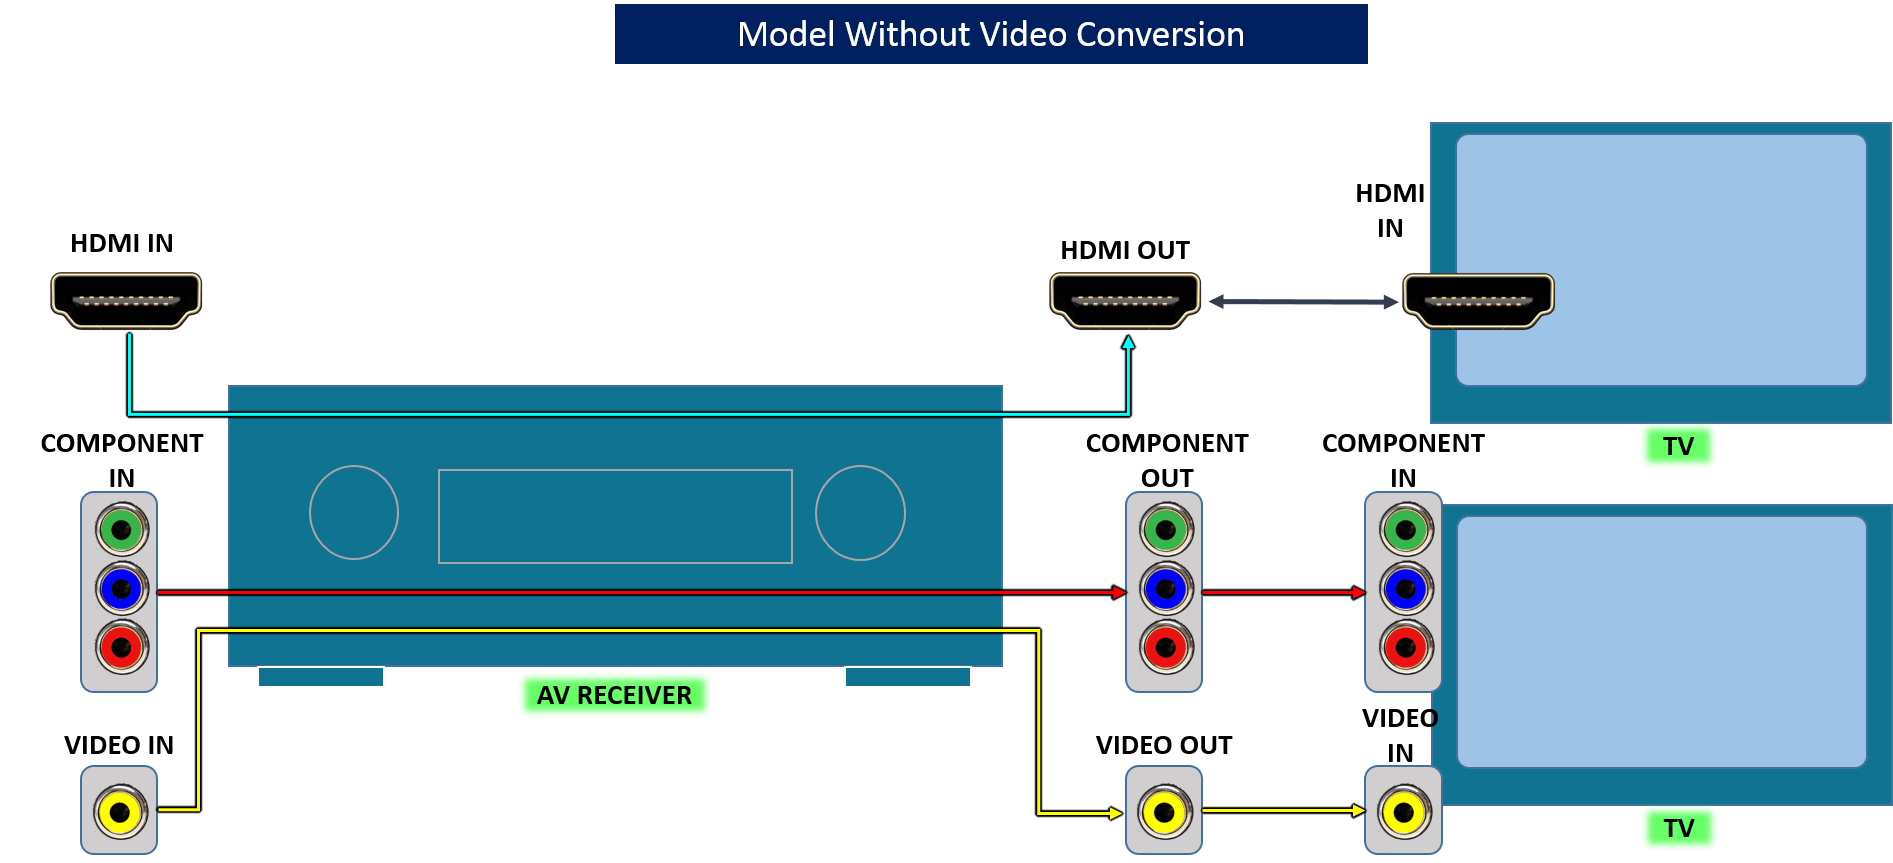 av receiver wiring diagram 2002 ford taurus cooling system receivers with video conversion capabilities without these only offer hdmi to pass through no analog